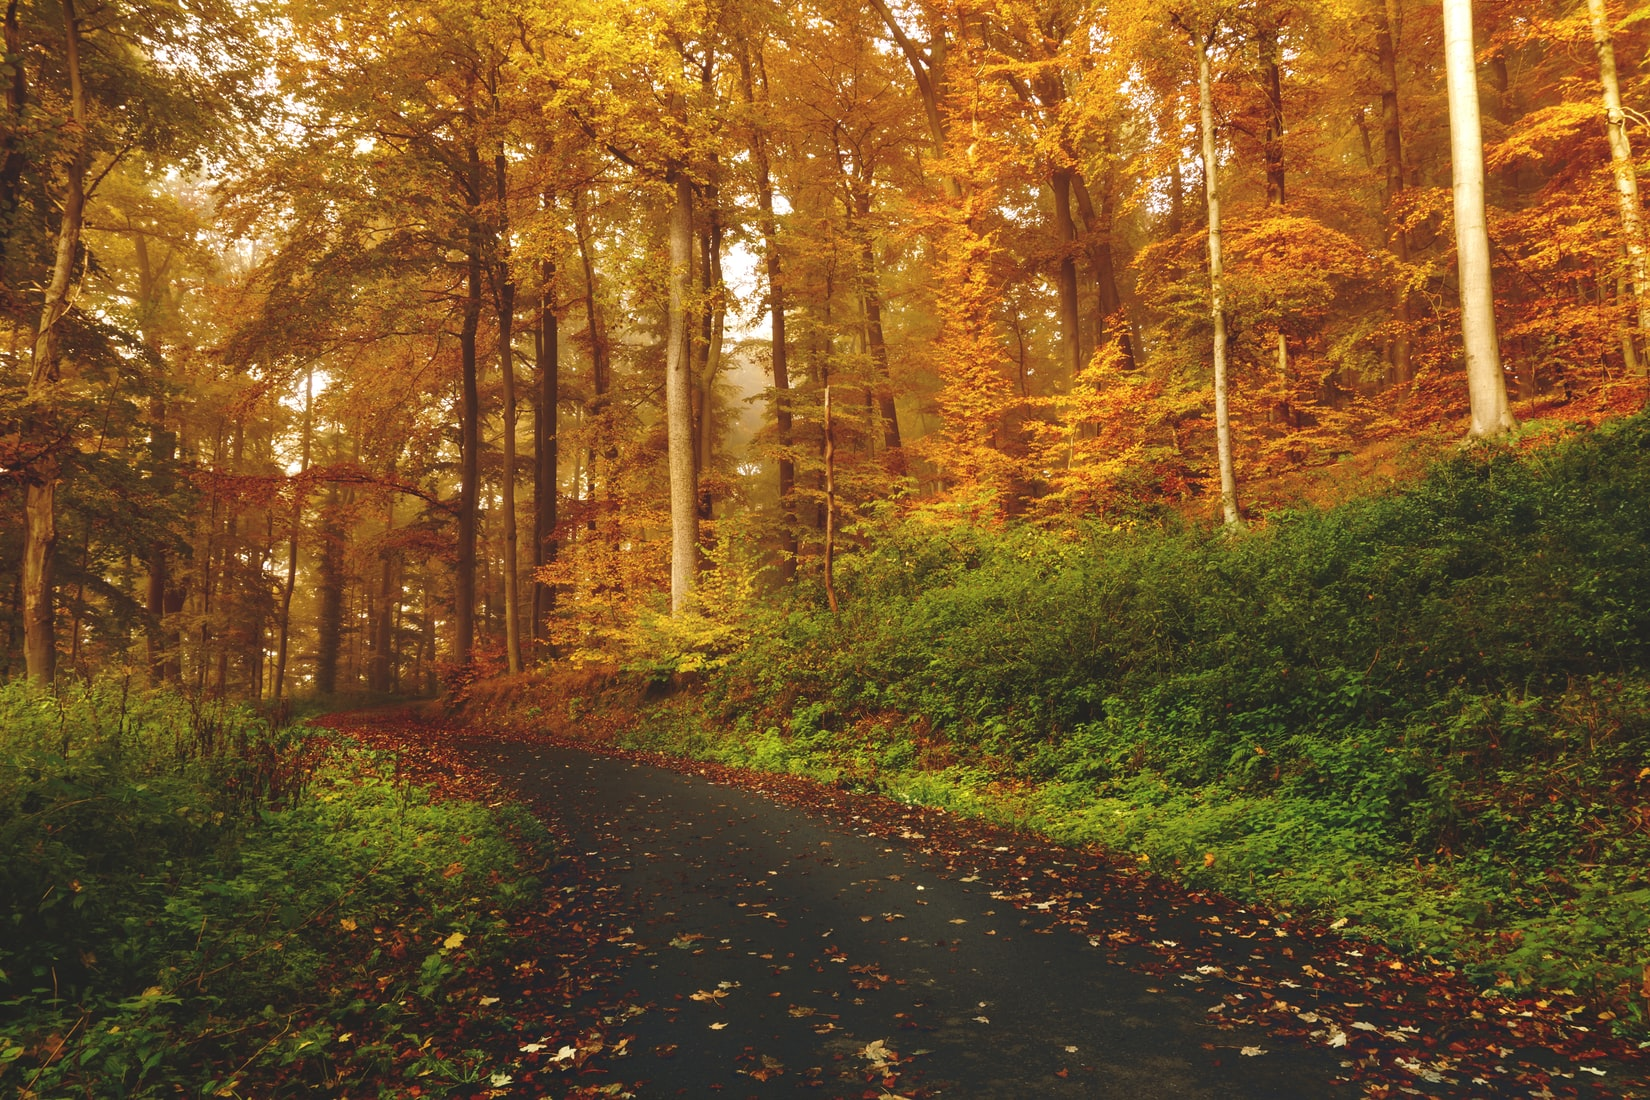 Road going through forest during fall